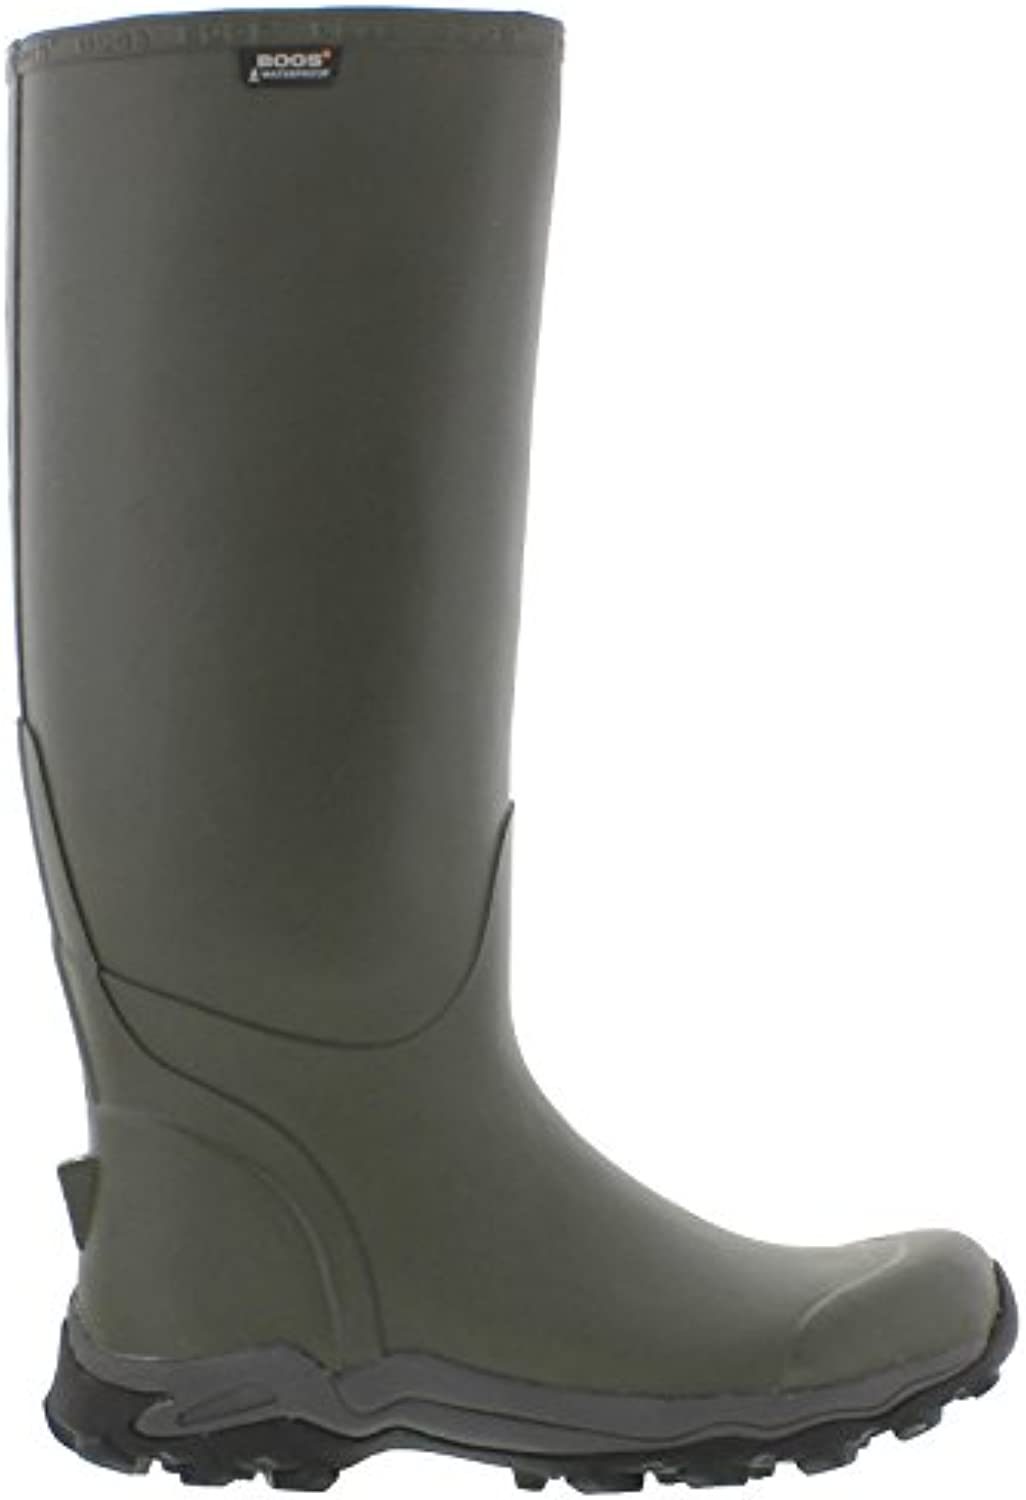 Mens Bogs Bradford Tall Olive Lightweight Waterproof Farming Wellington Boots -UK 6 (EU 40)